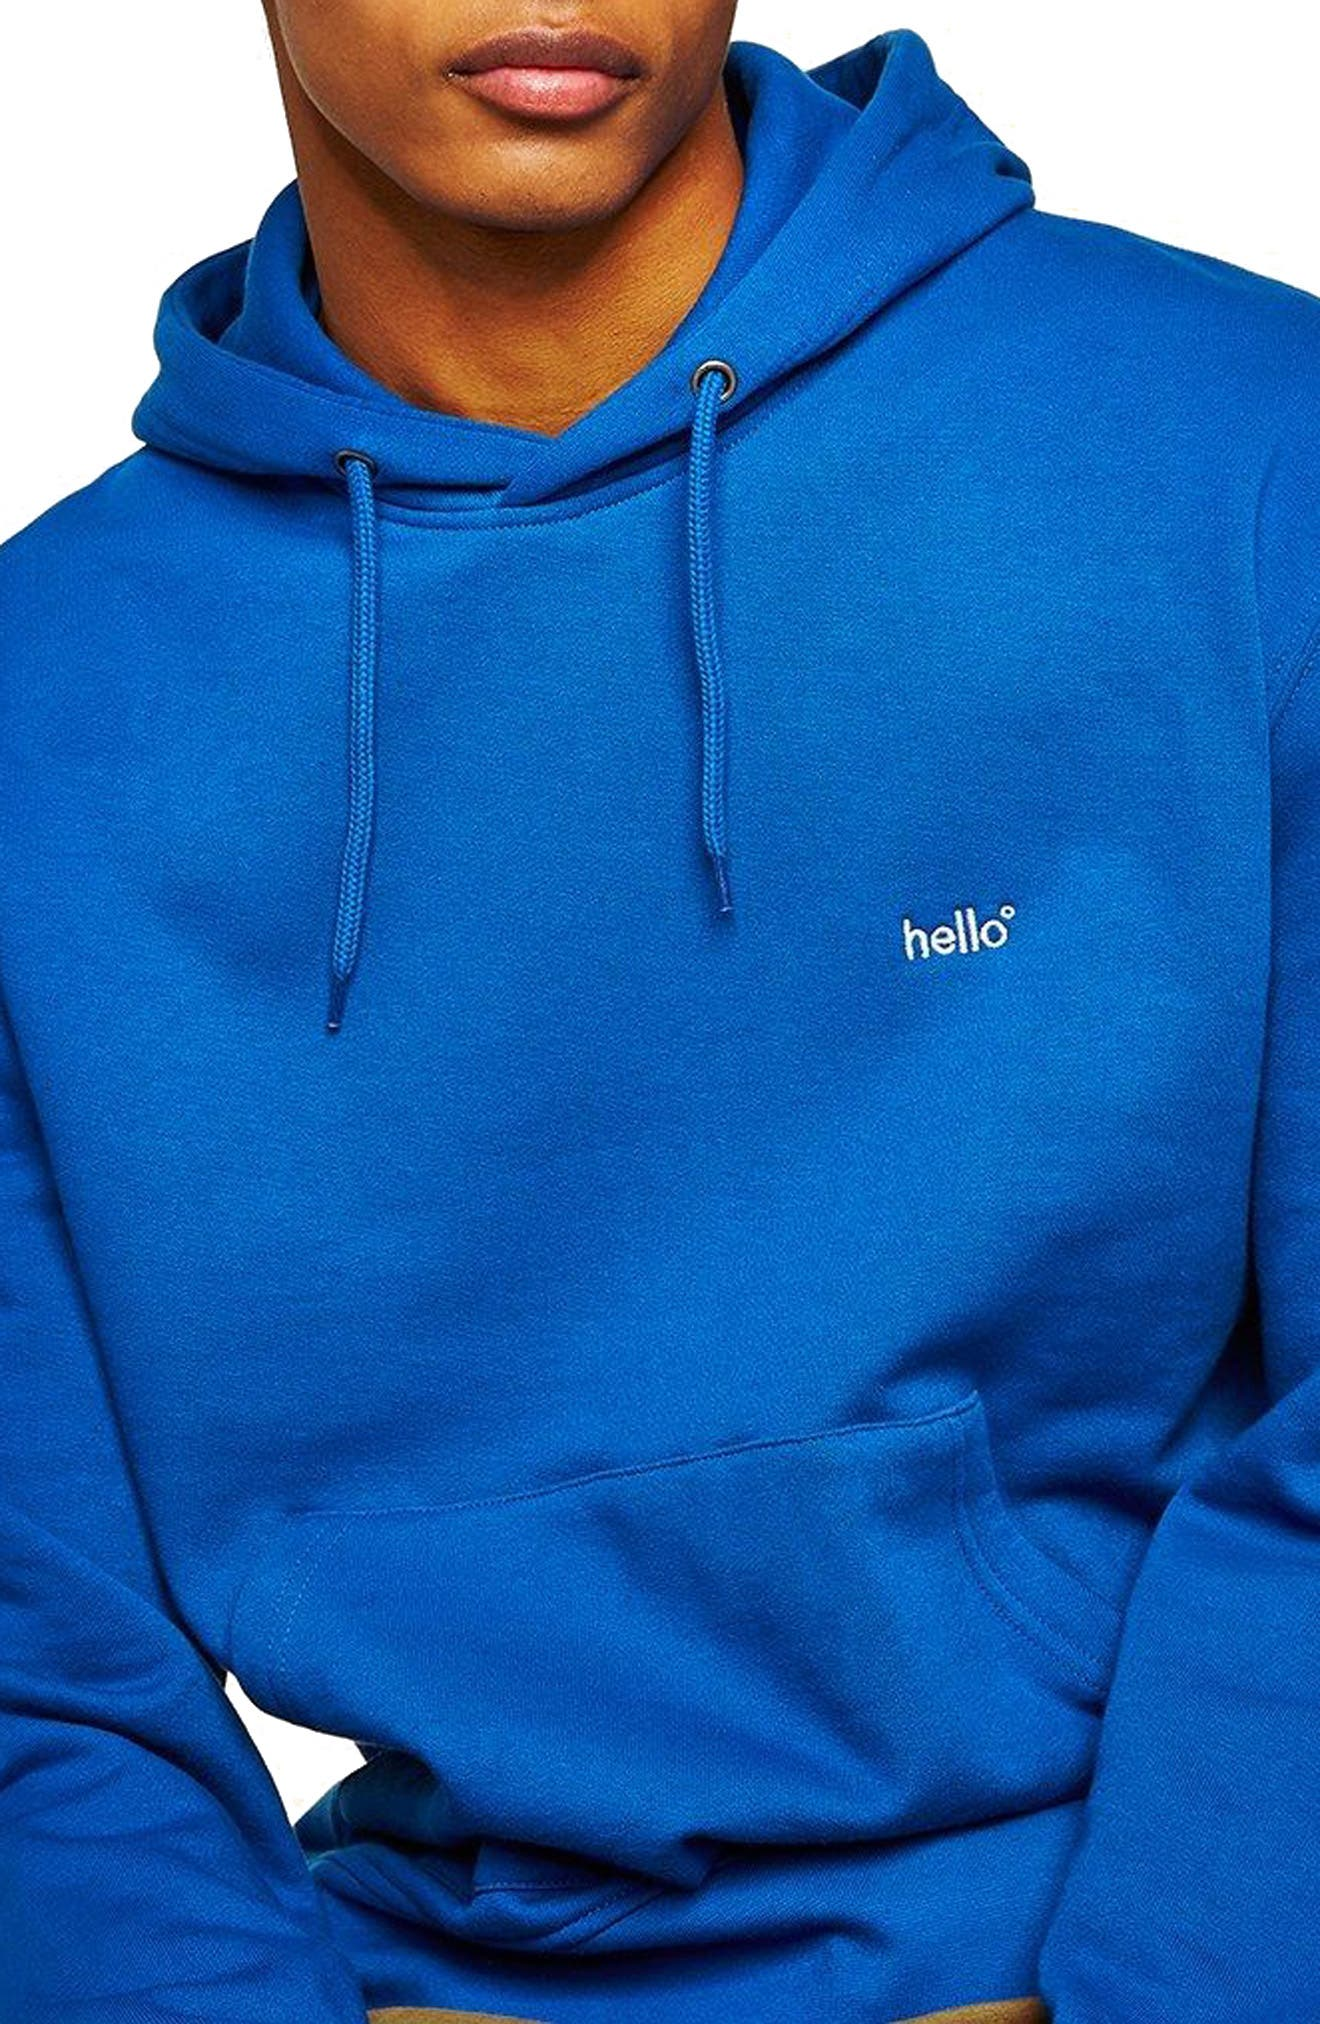 Classic Fit Tristan Hello Embroidered Hoodie,                         Main,                         color,